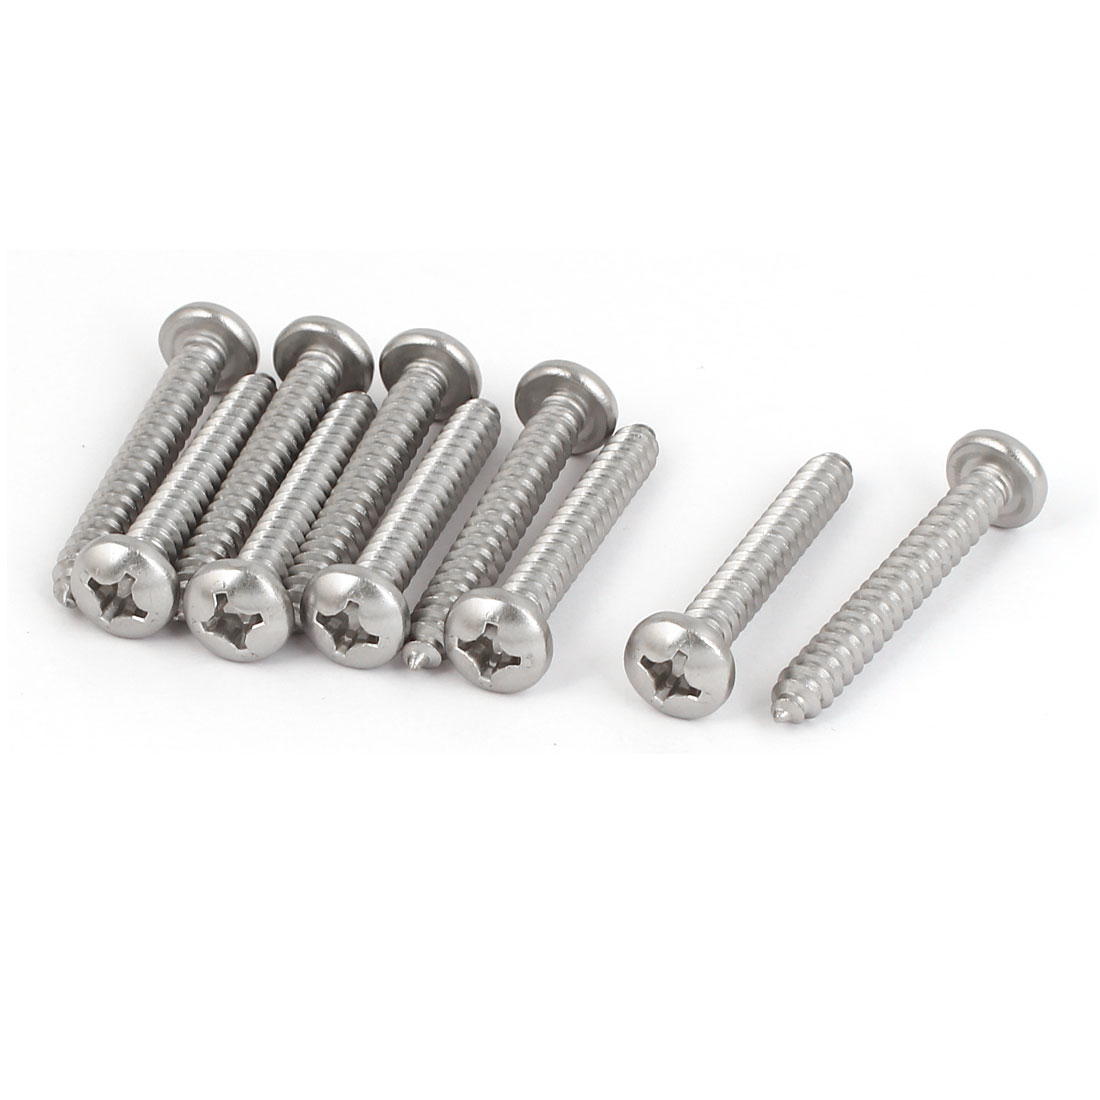 M5.5x40mm 316 Stainless Steel Metric Phillips Pan Head Self Tapping Screws 10pcs